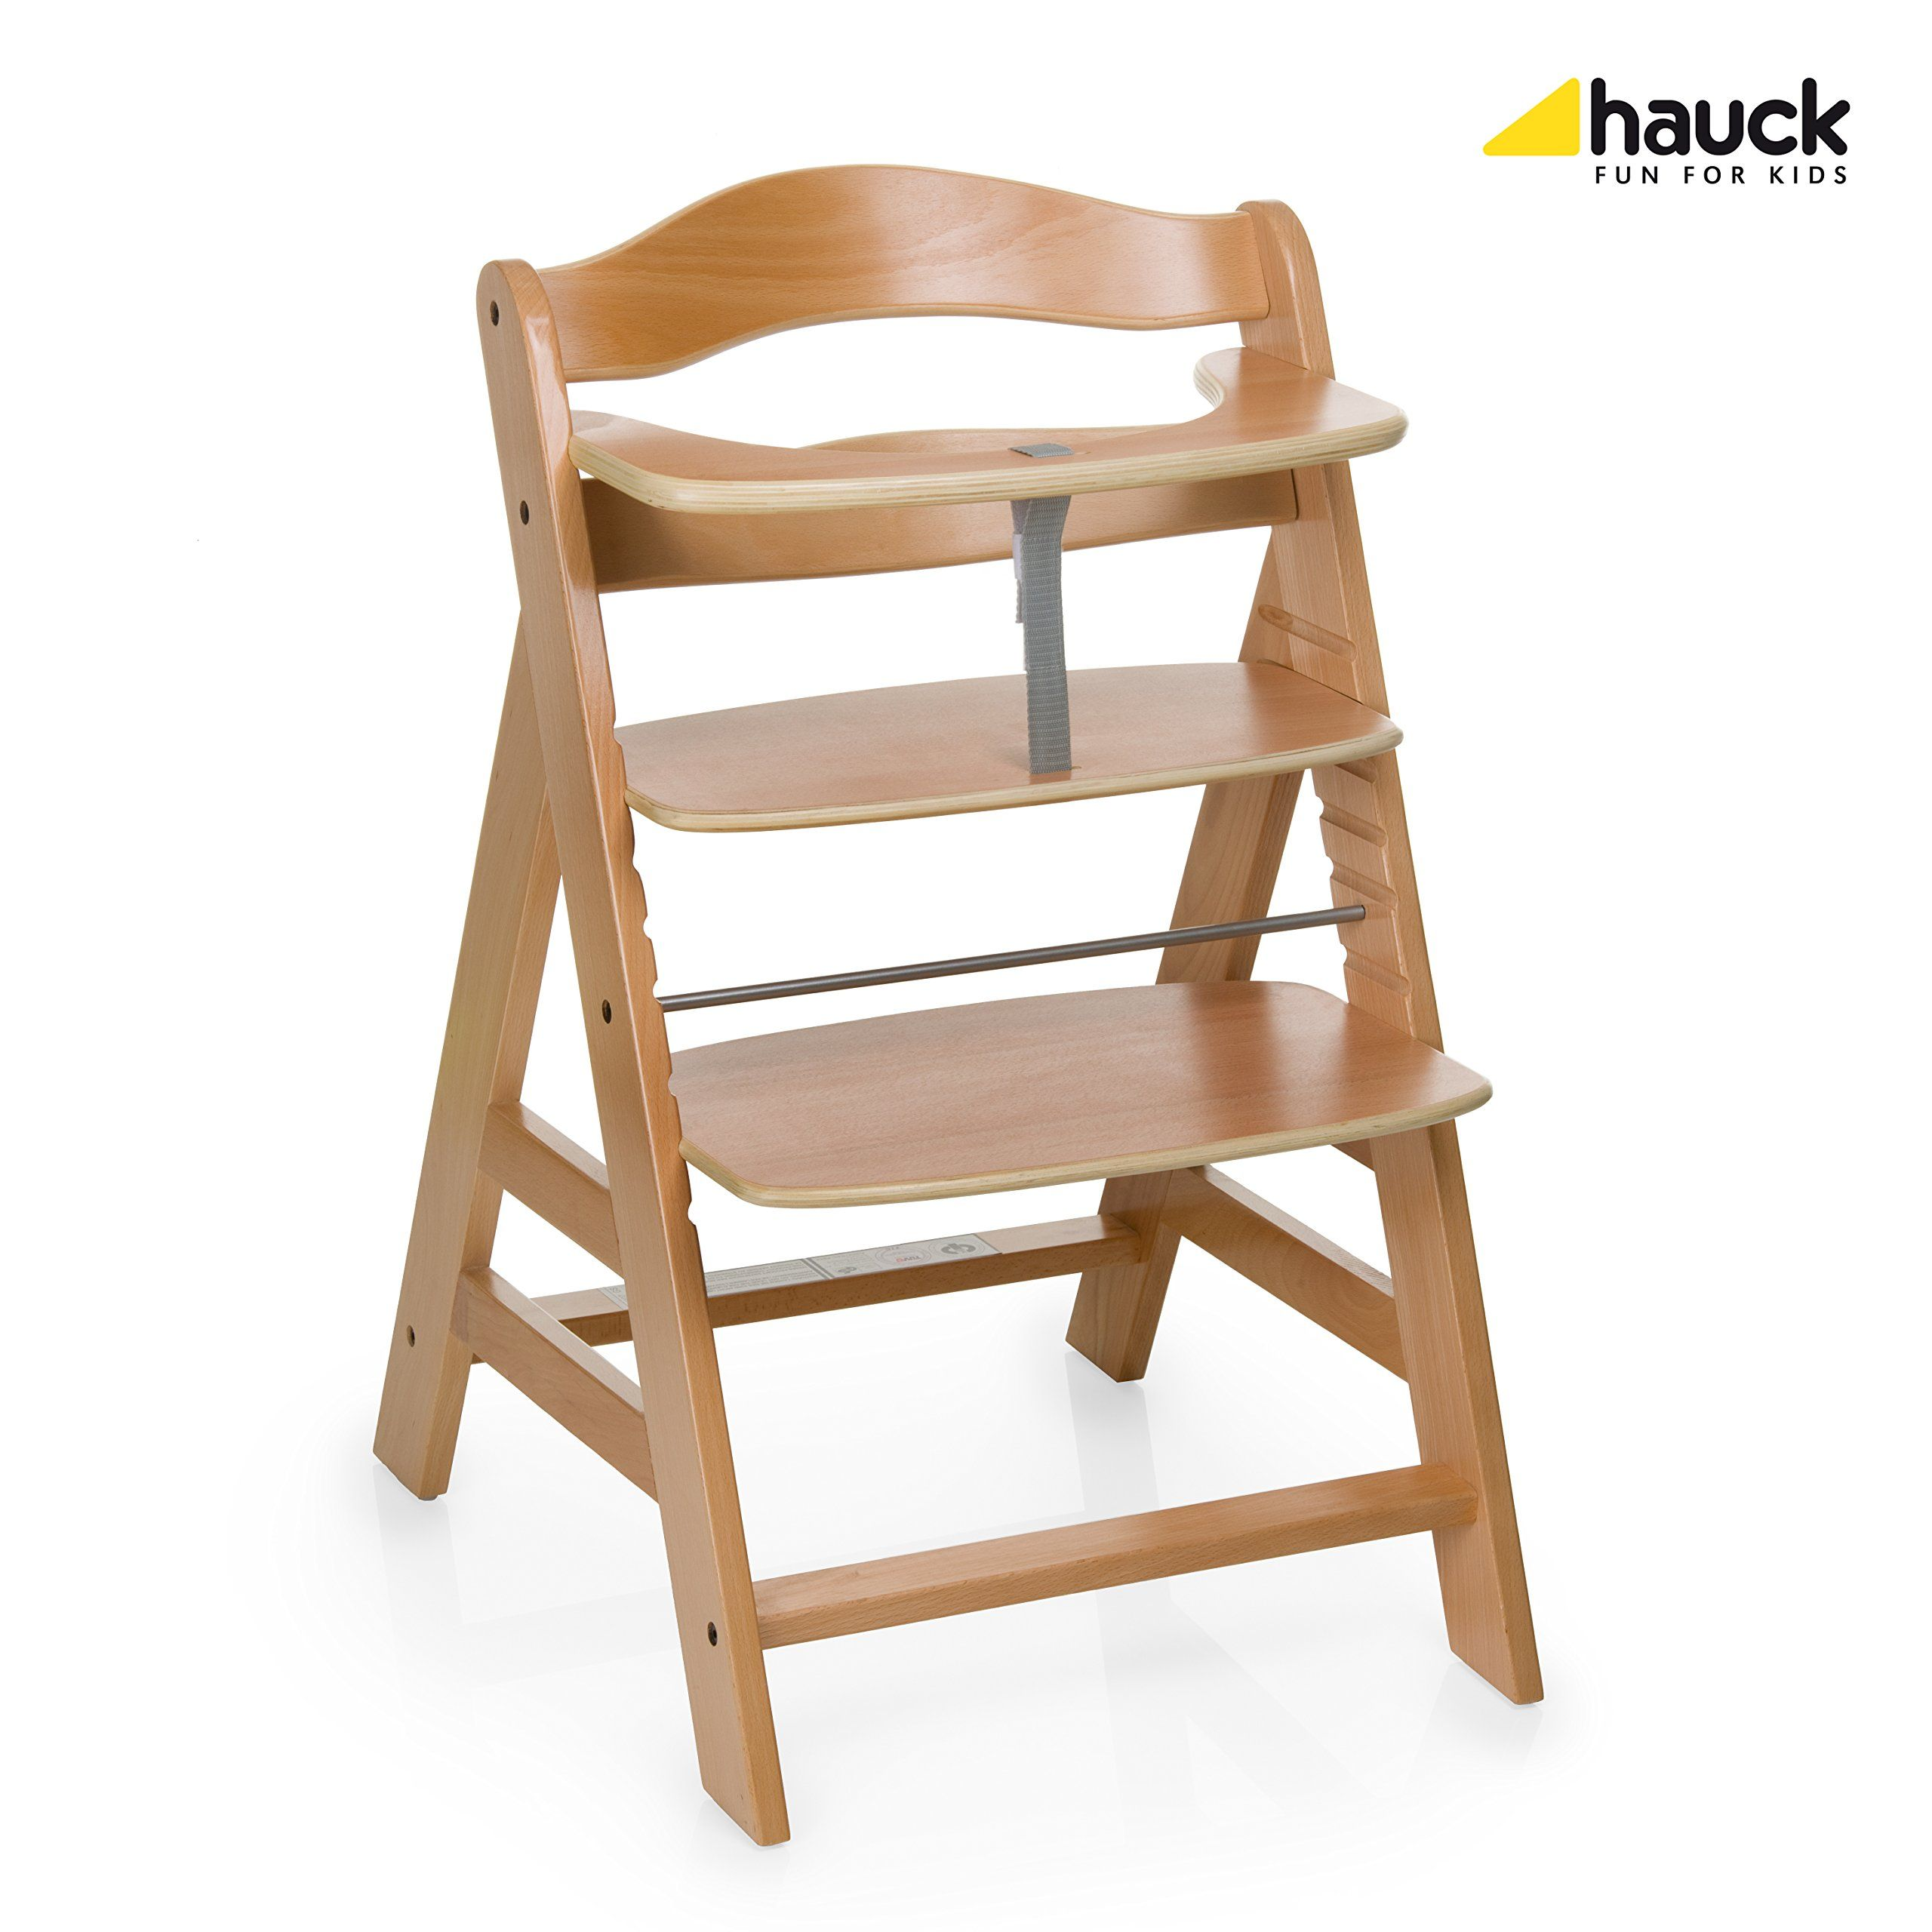 Hauck Alpha Wooden Highchair: Amazon.co.uk: Baby | Wooden ...